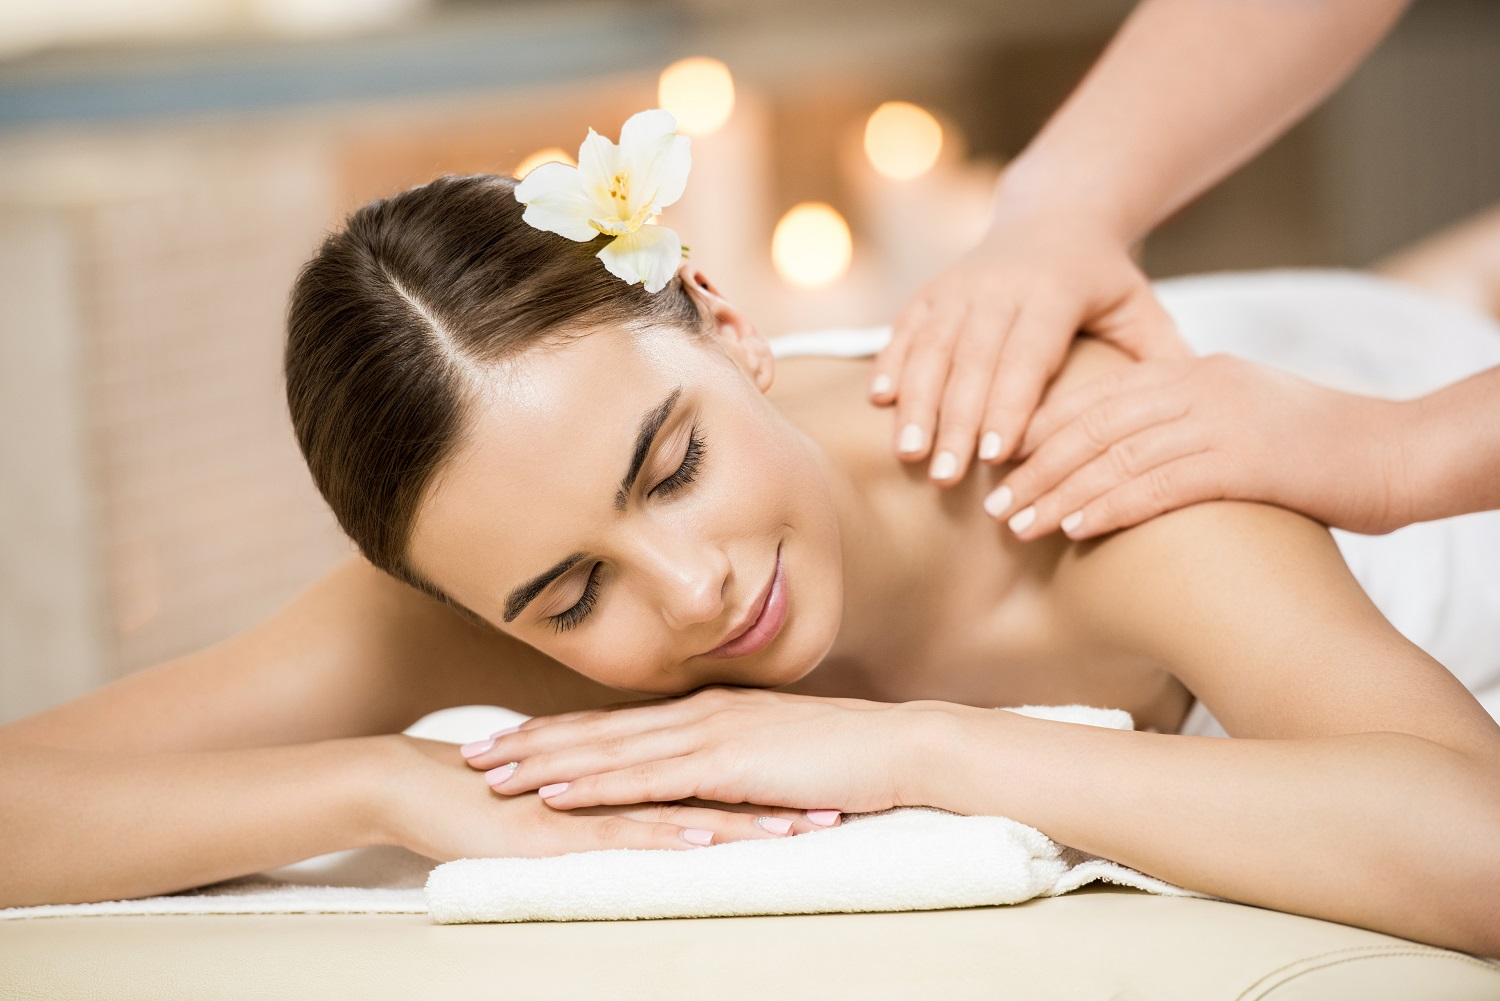 The Healthy Benefits of Massage